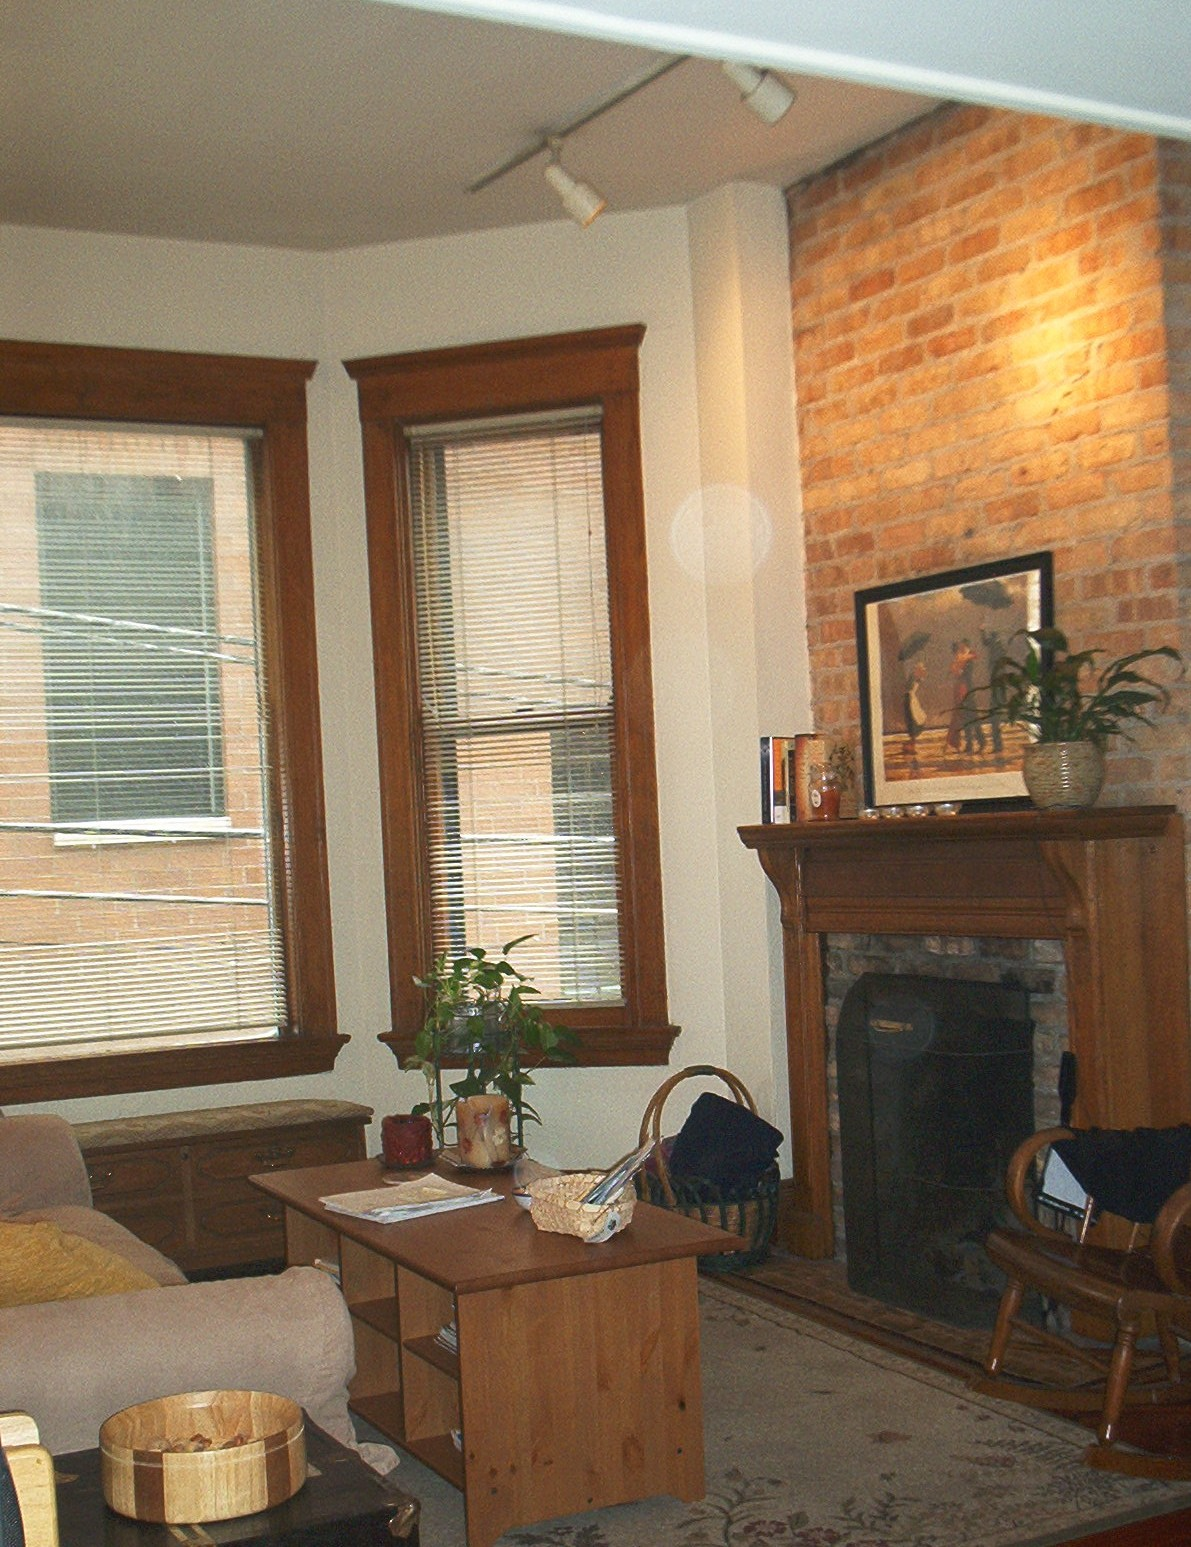 1010 w altgeld st 4 chicago il 60614 2 bedroom apartment for rent